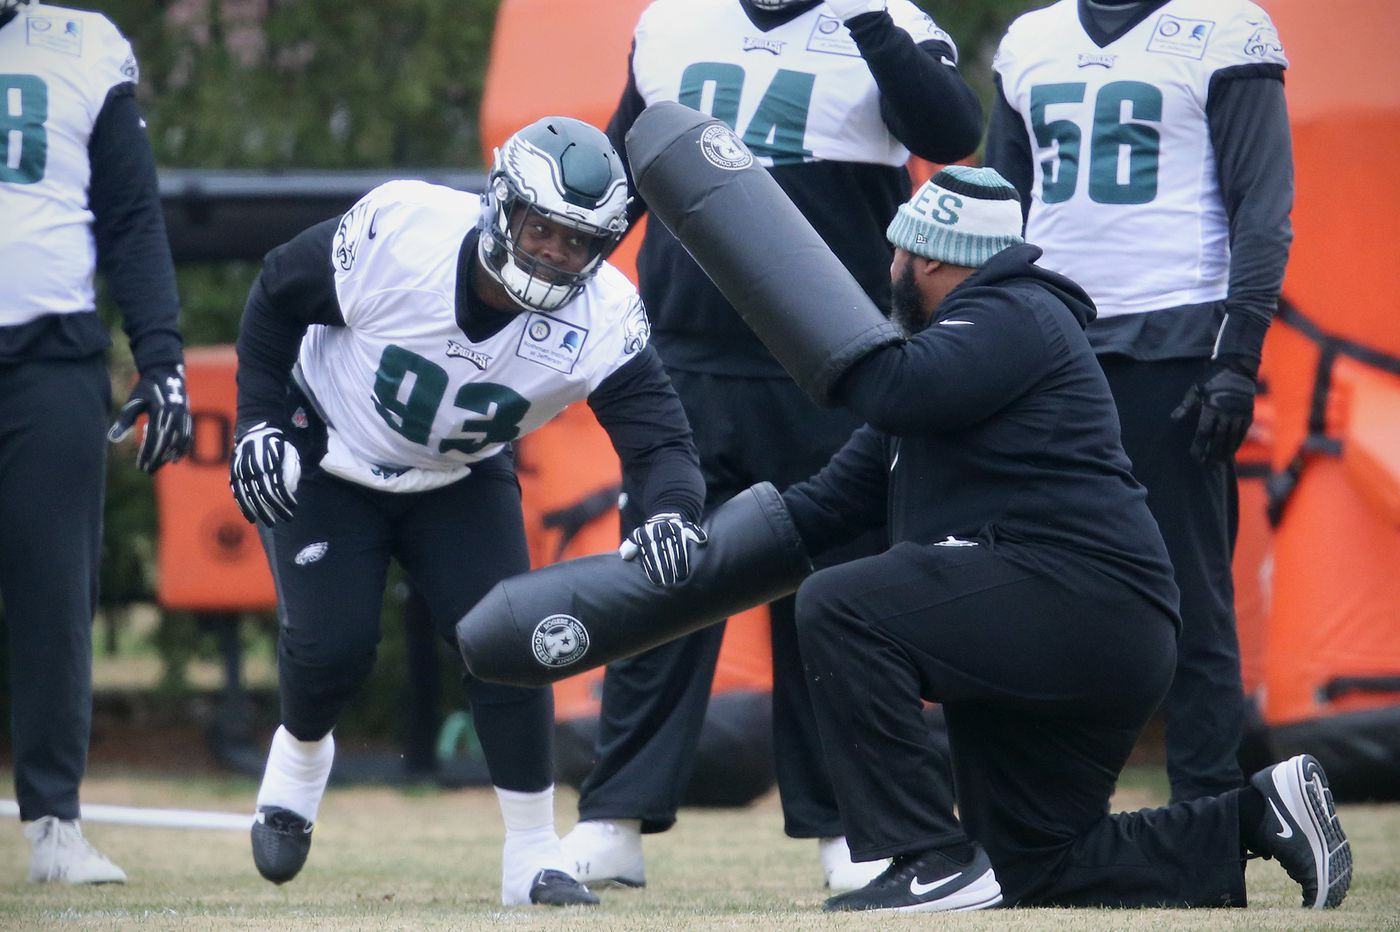 Eagles-Texans inactives: Tim Jernigan returns to Birds' lineup, Houston's Lamar Miller out